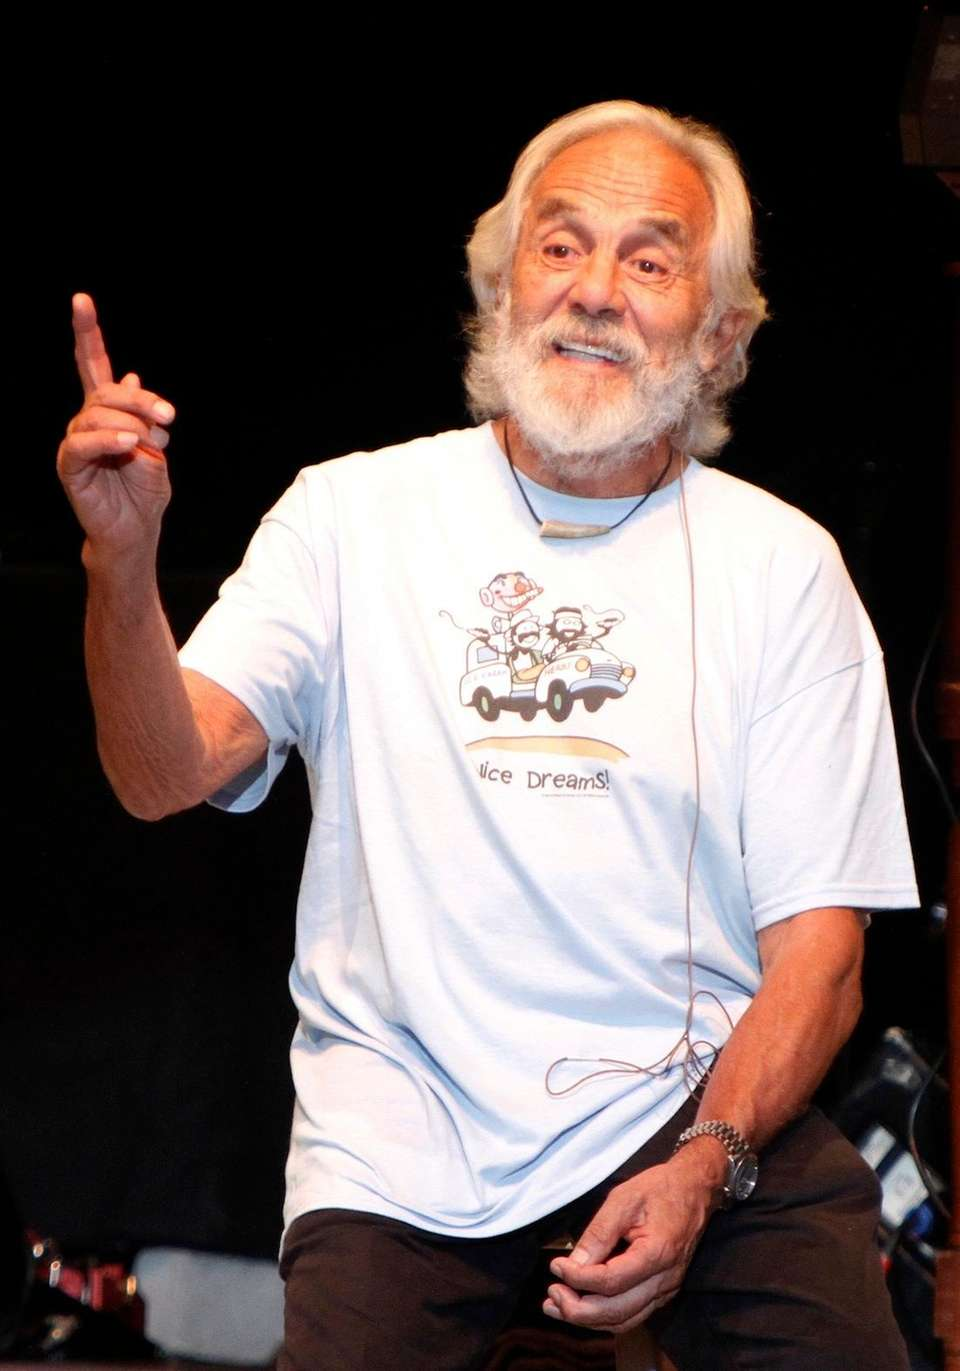 Comedian and actor Tommy Chong, most recognized as